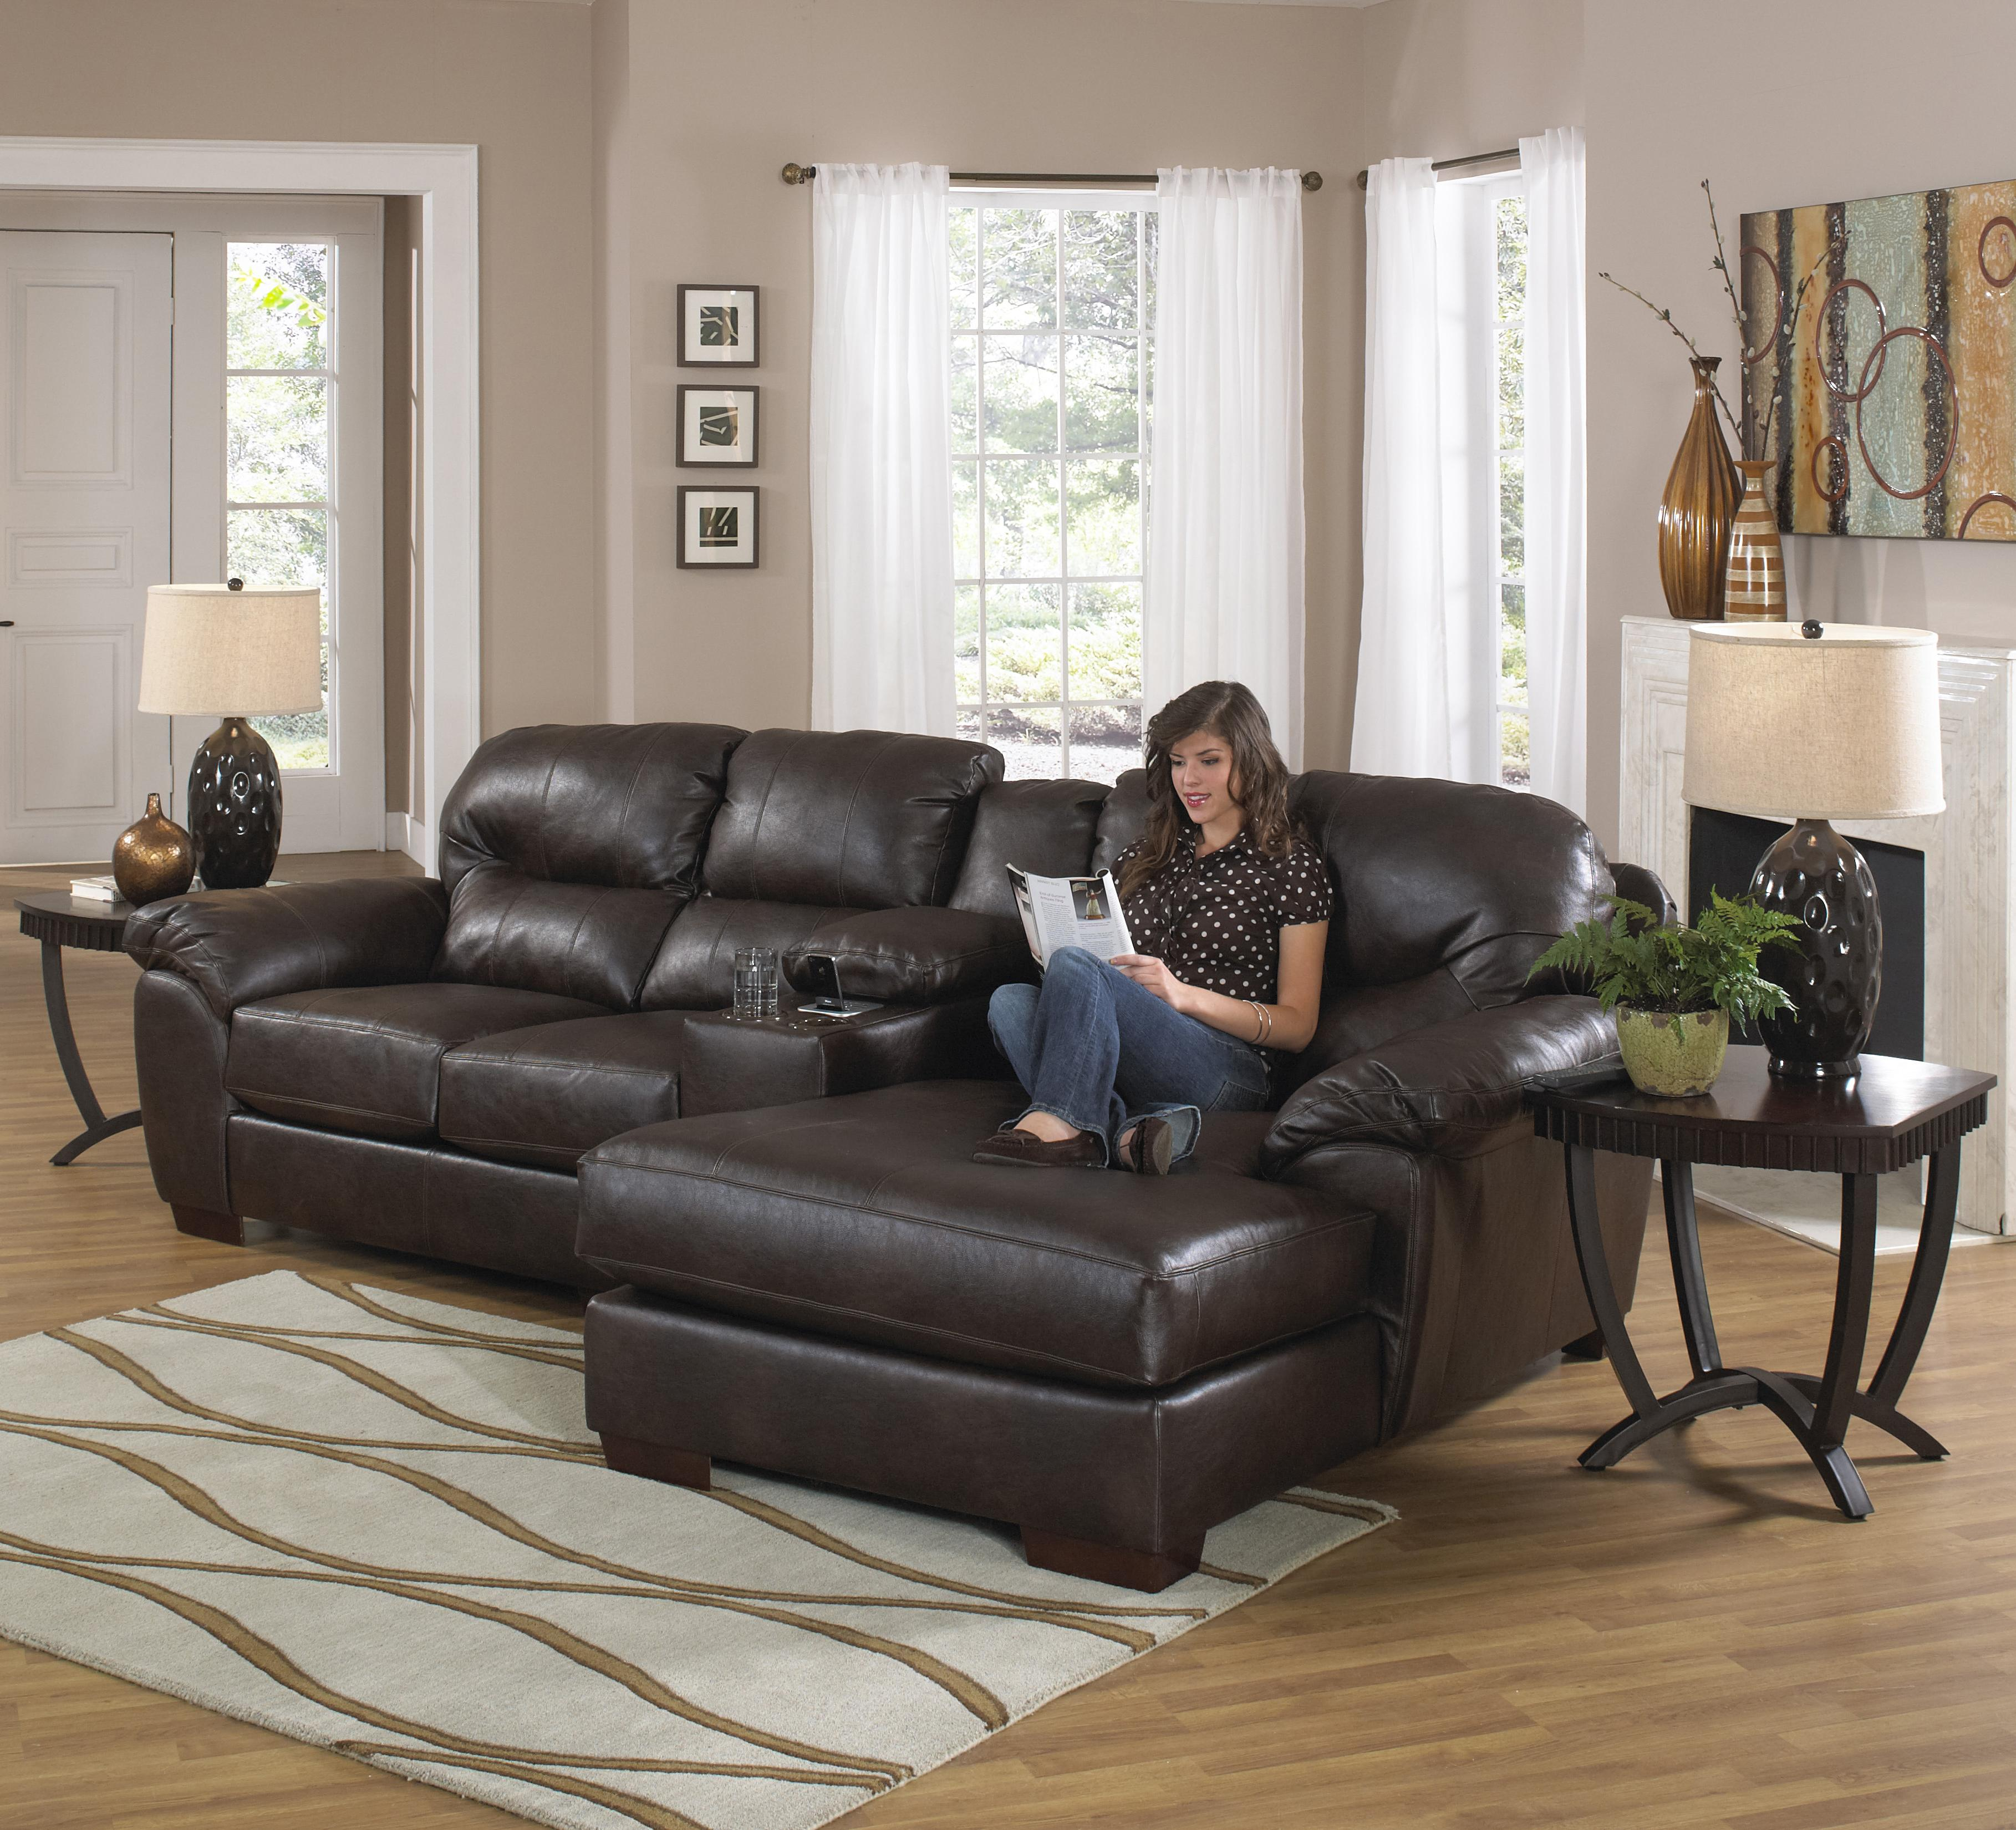 Jackson Furniture MARCO Three Seat Sectional Sofa with Console and